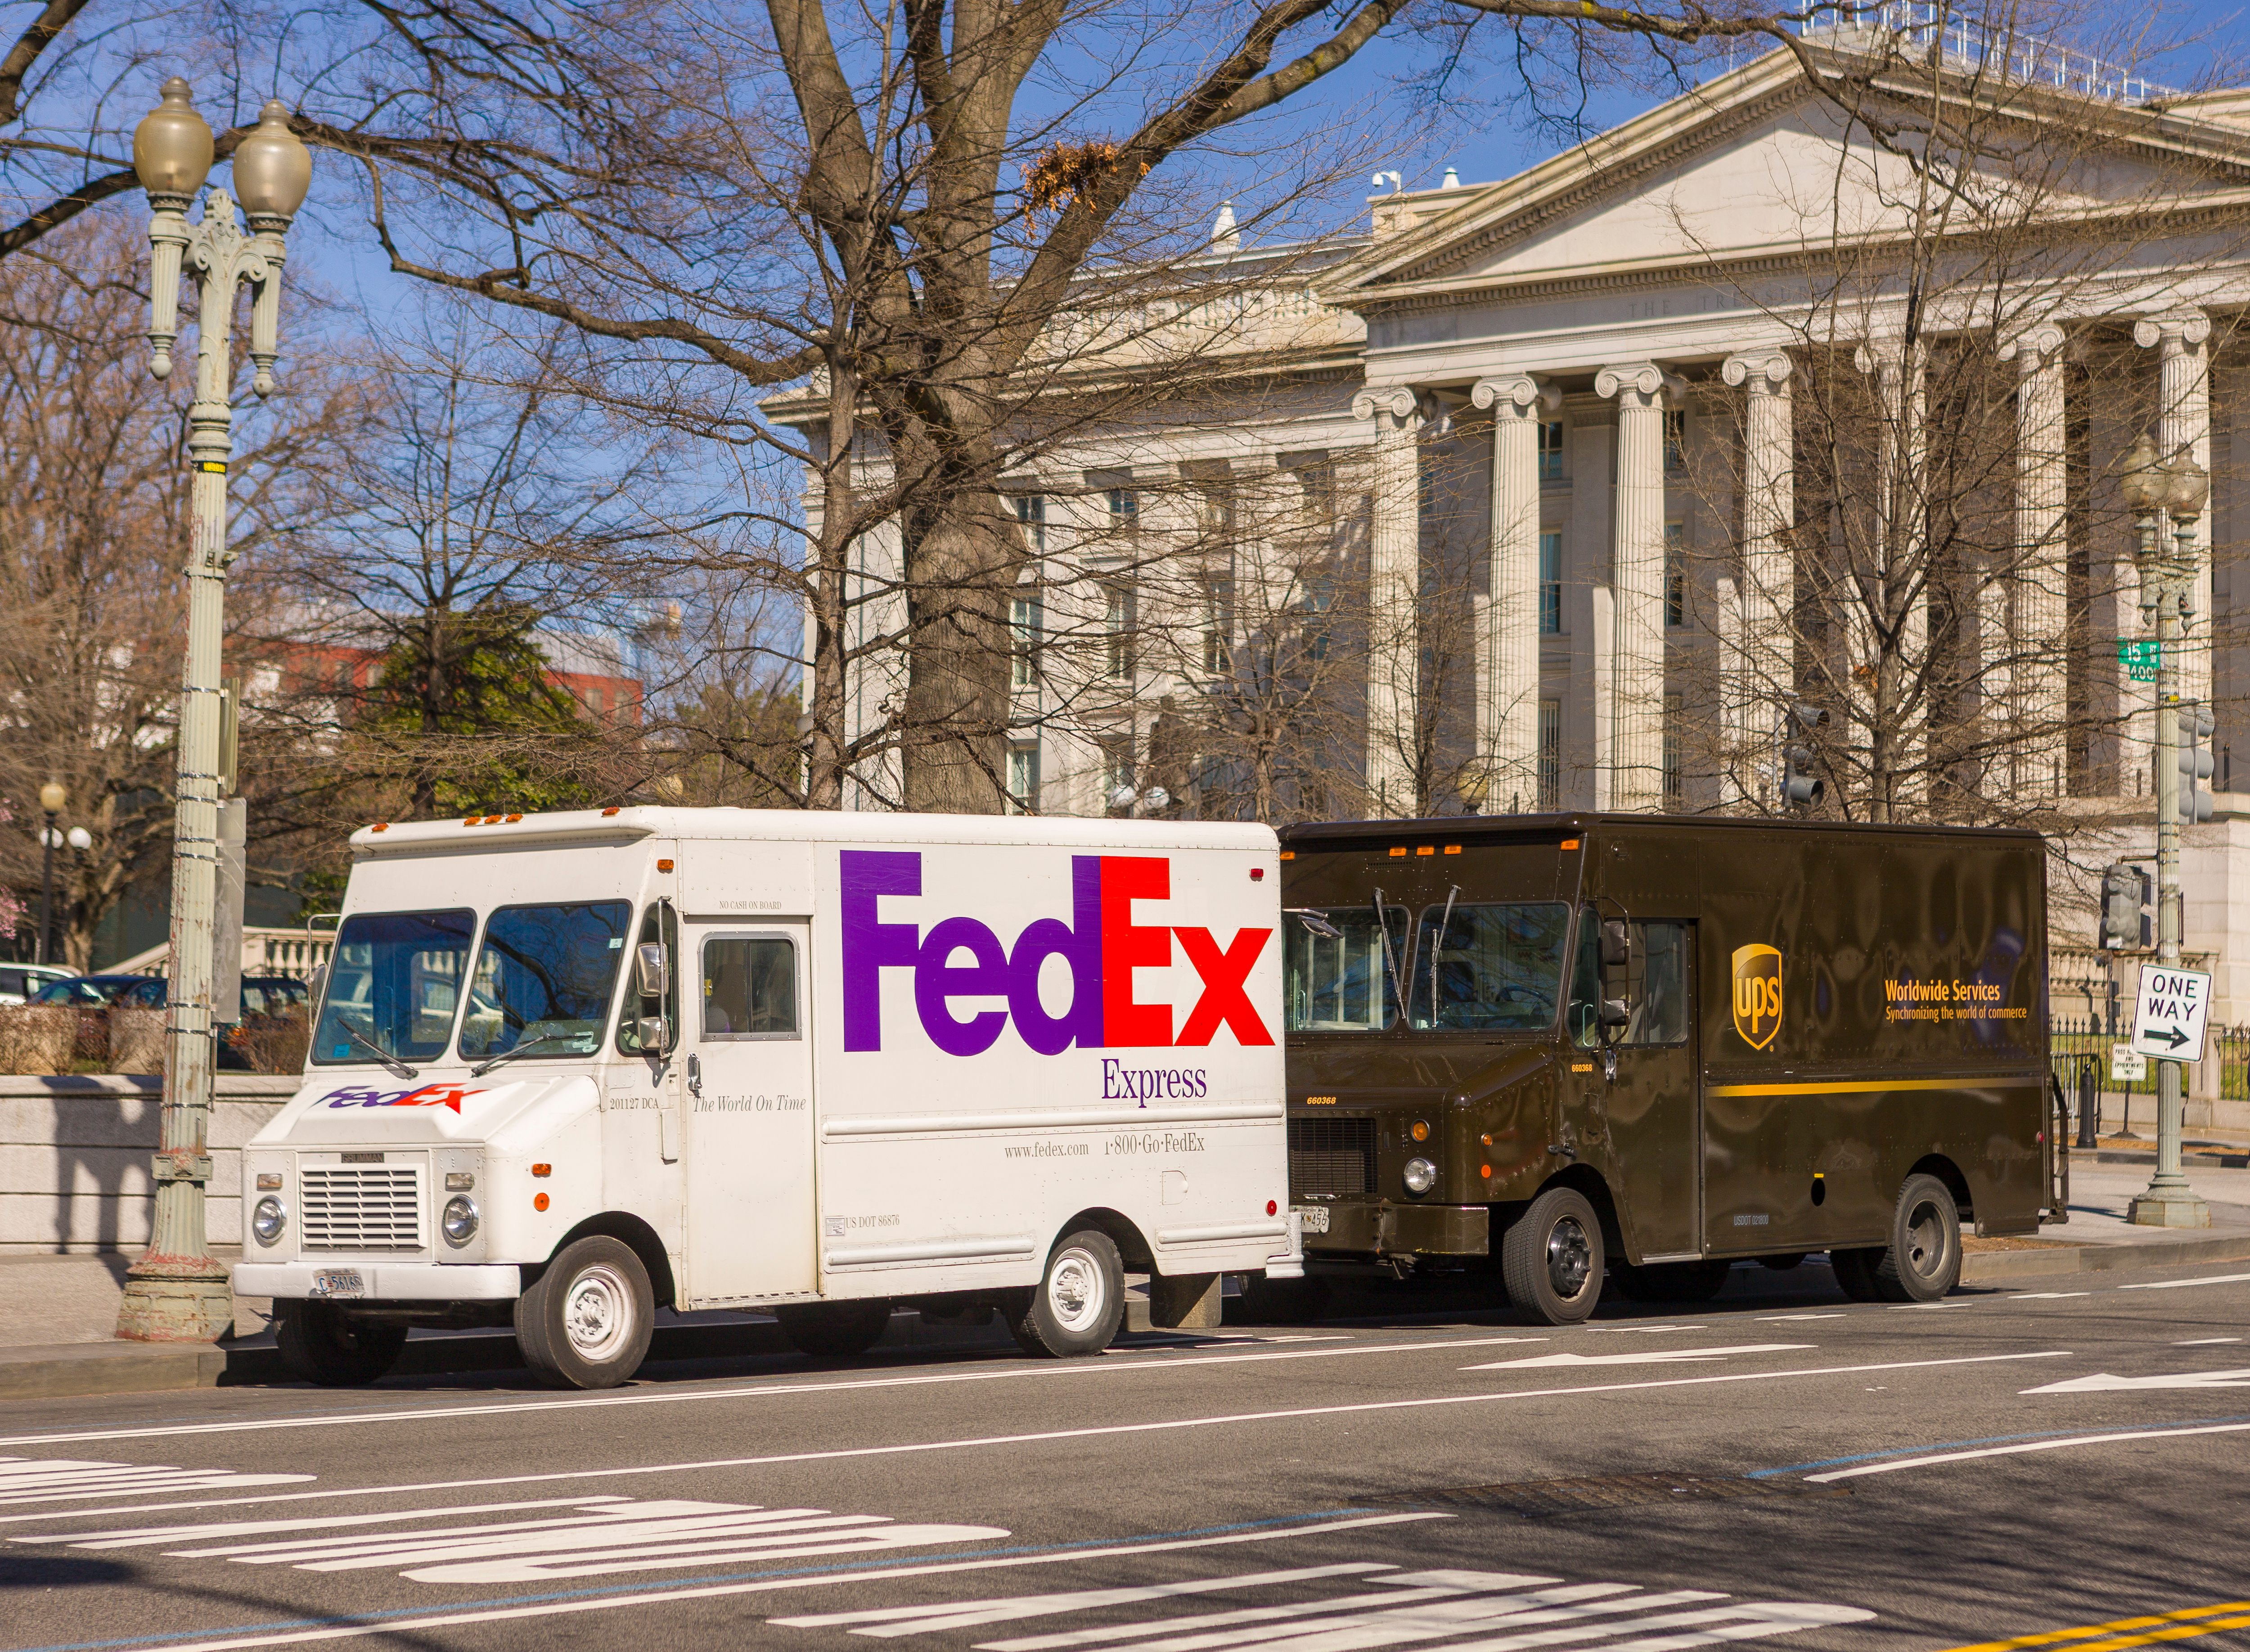 Two delivery trucks—one white, the other brown—are at rest outside of a classical building on a city street.